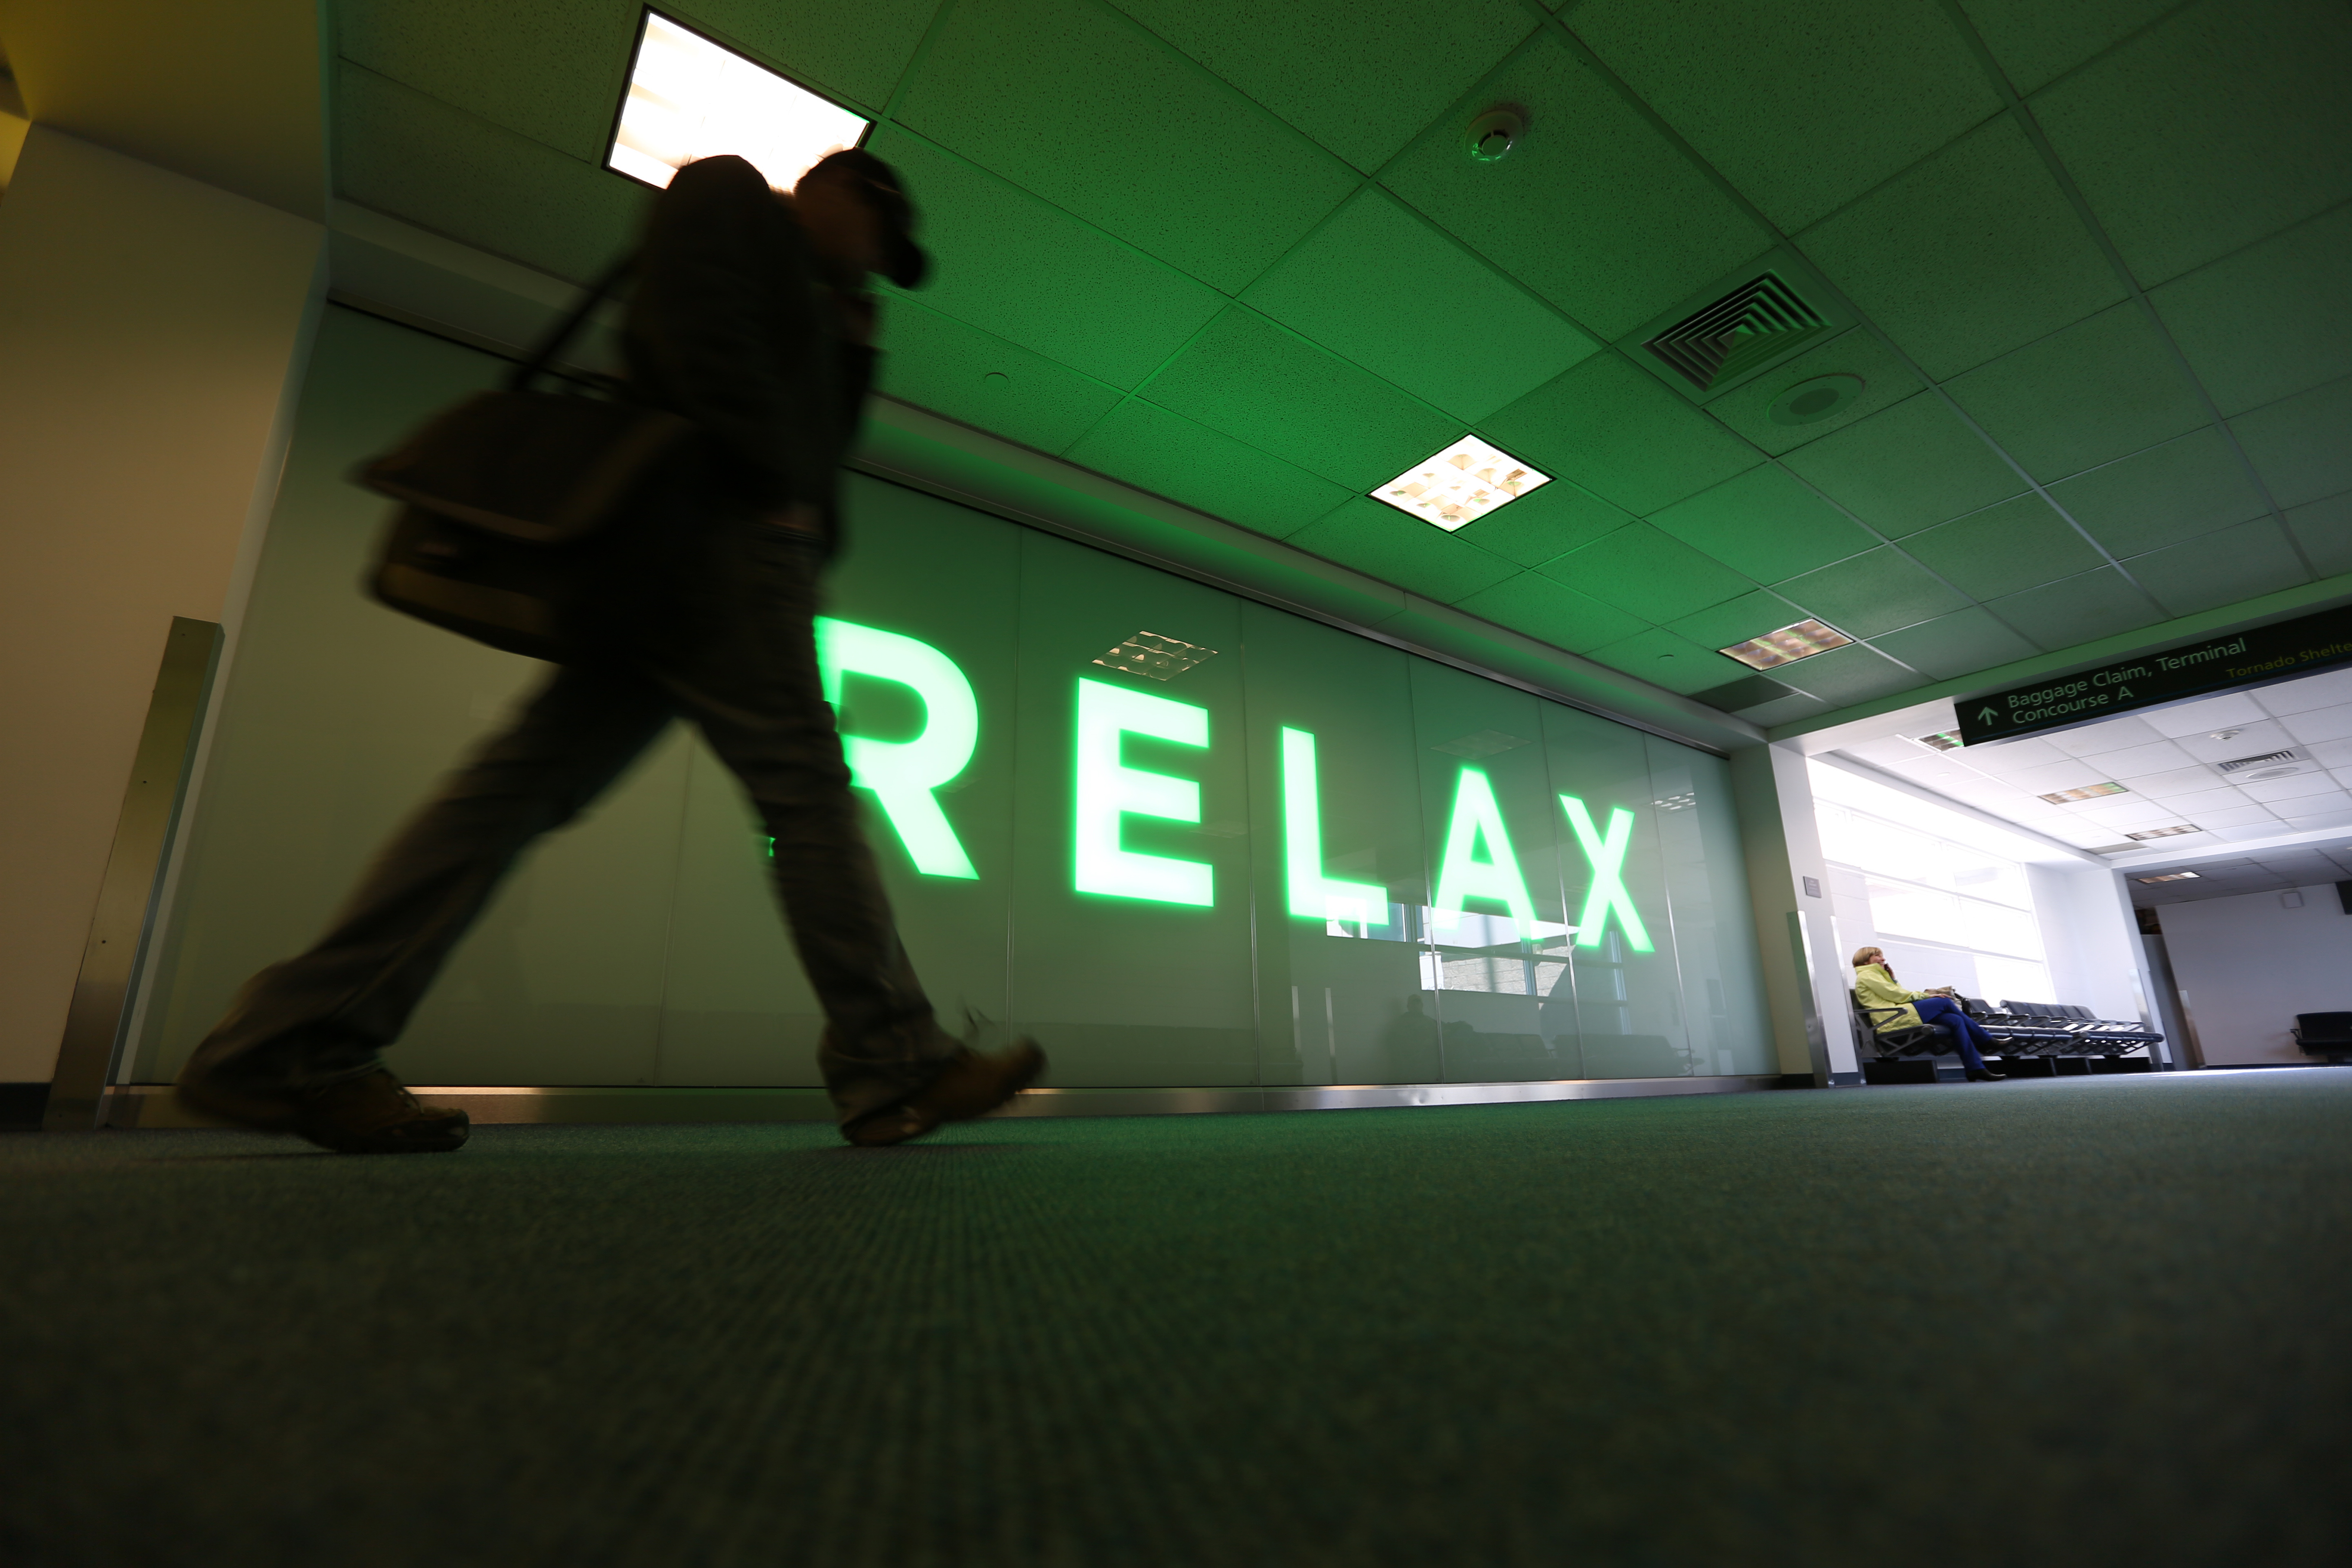 Go to the Relax page